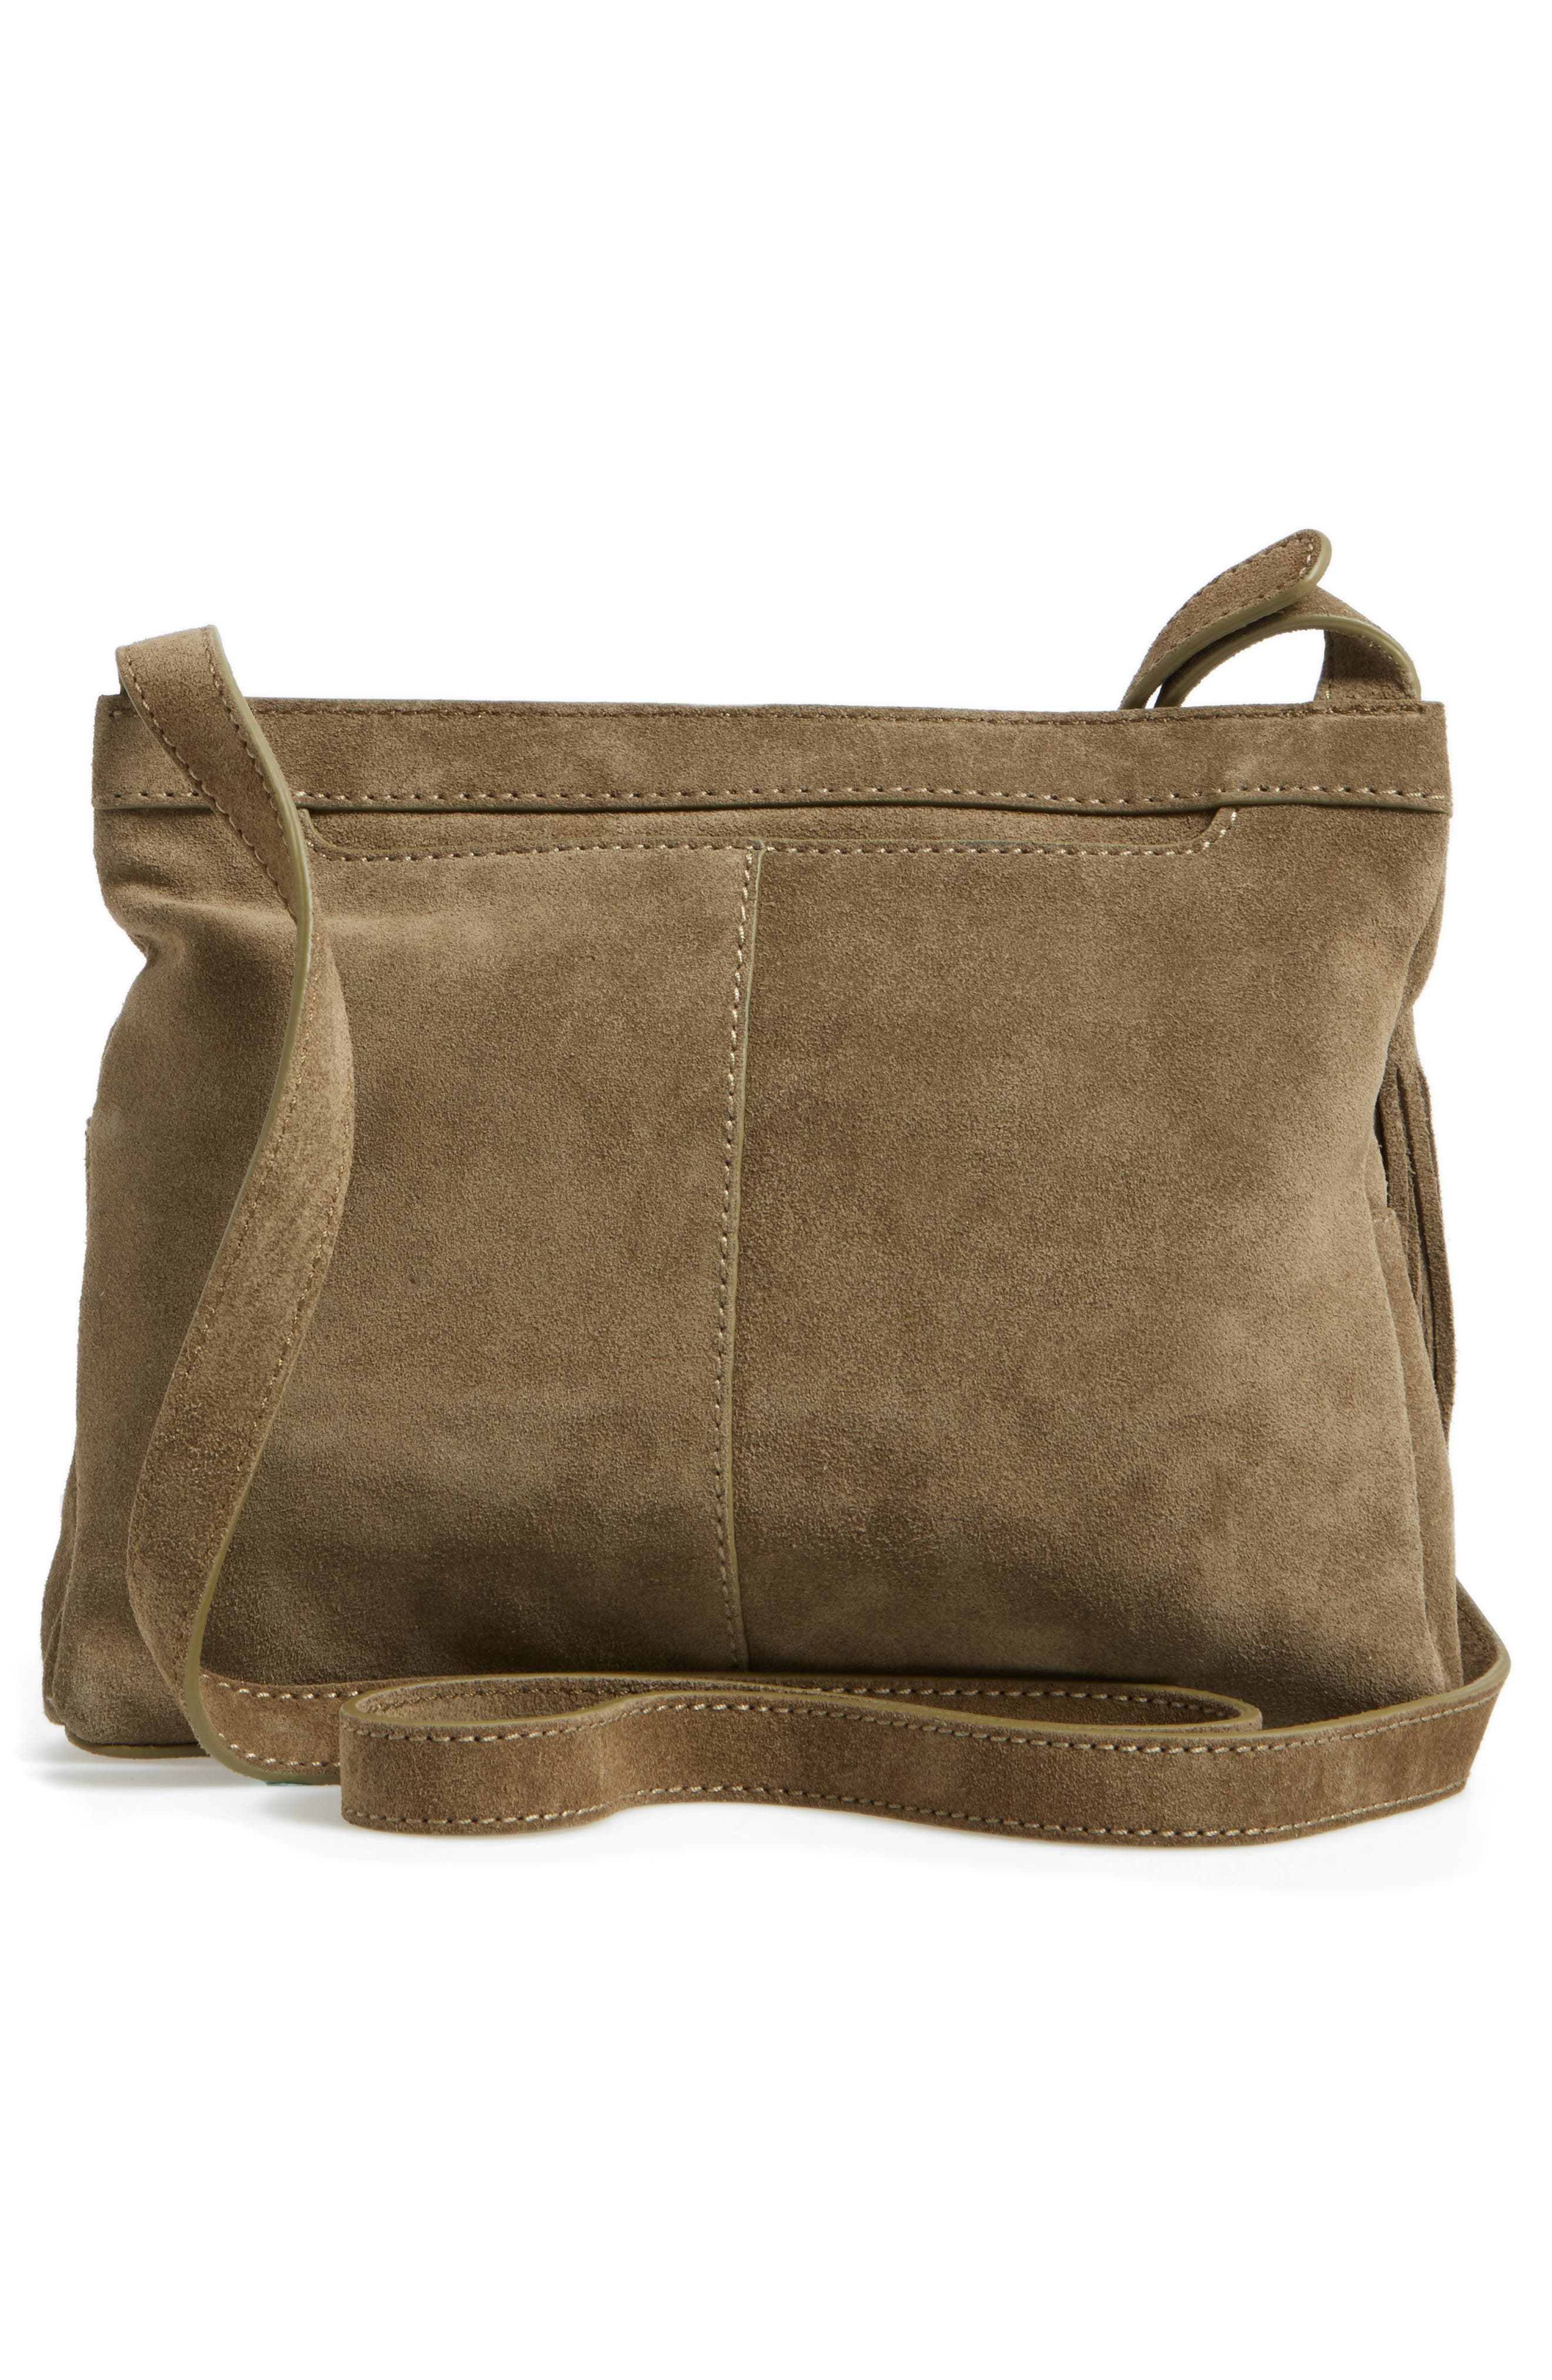 Cassie Calfskin Suede Crossbody Bag,                             Alternate thumbnail 3, color,                             Sage